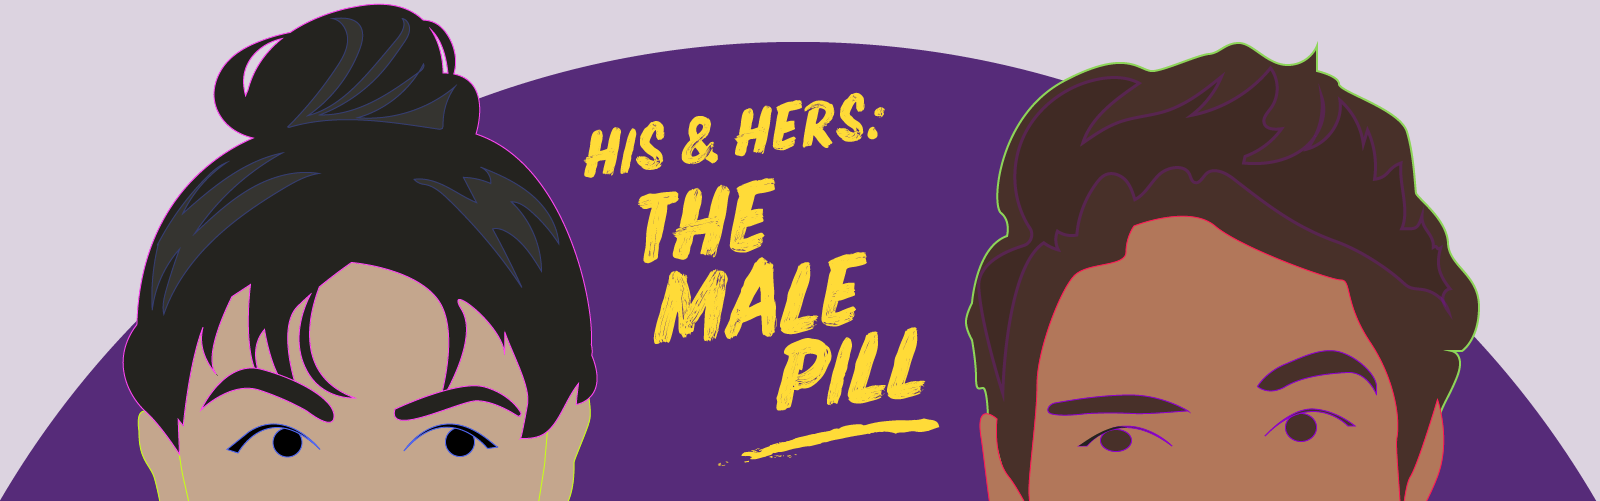 male-pill-blogheader-02.png